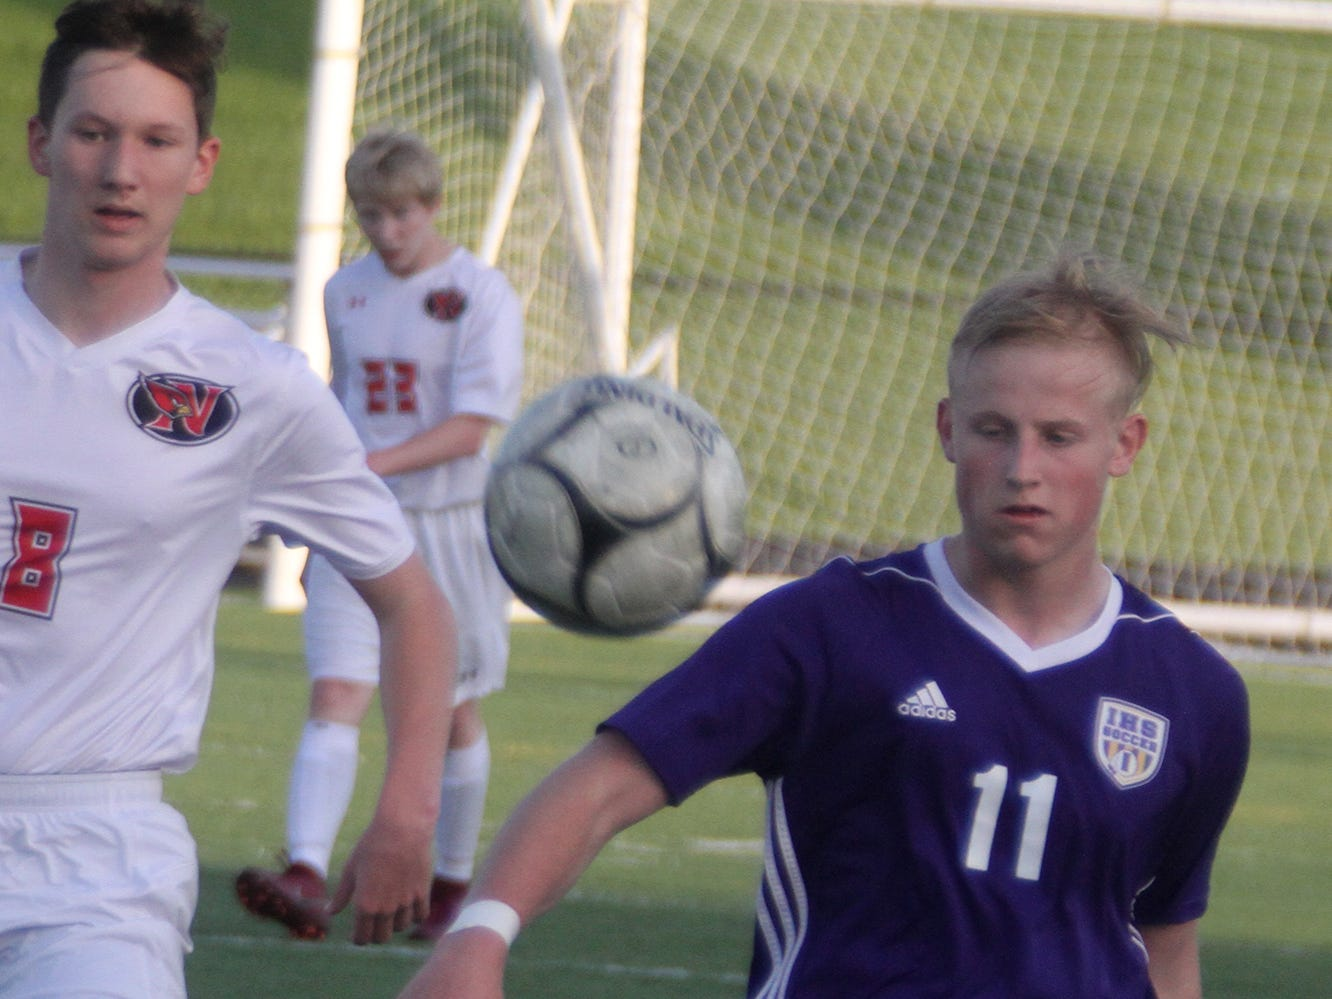 Indianola junior Peyton Boozell clears the ball. Indianola beat Newton 2-0 at home in a Little Hawkeye Conference game.